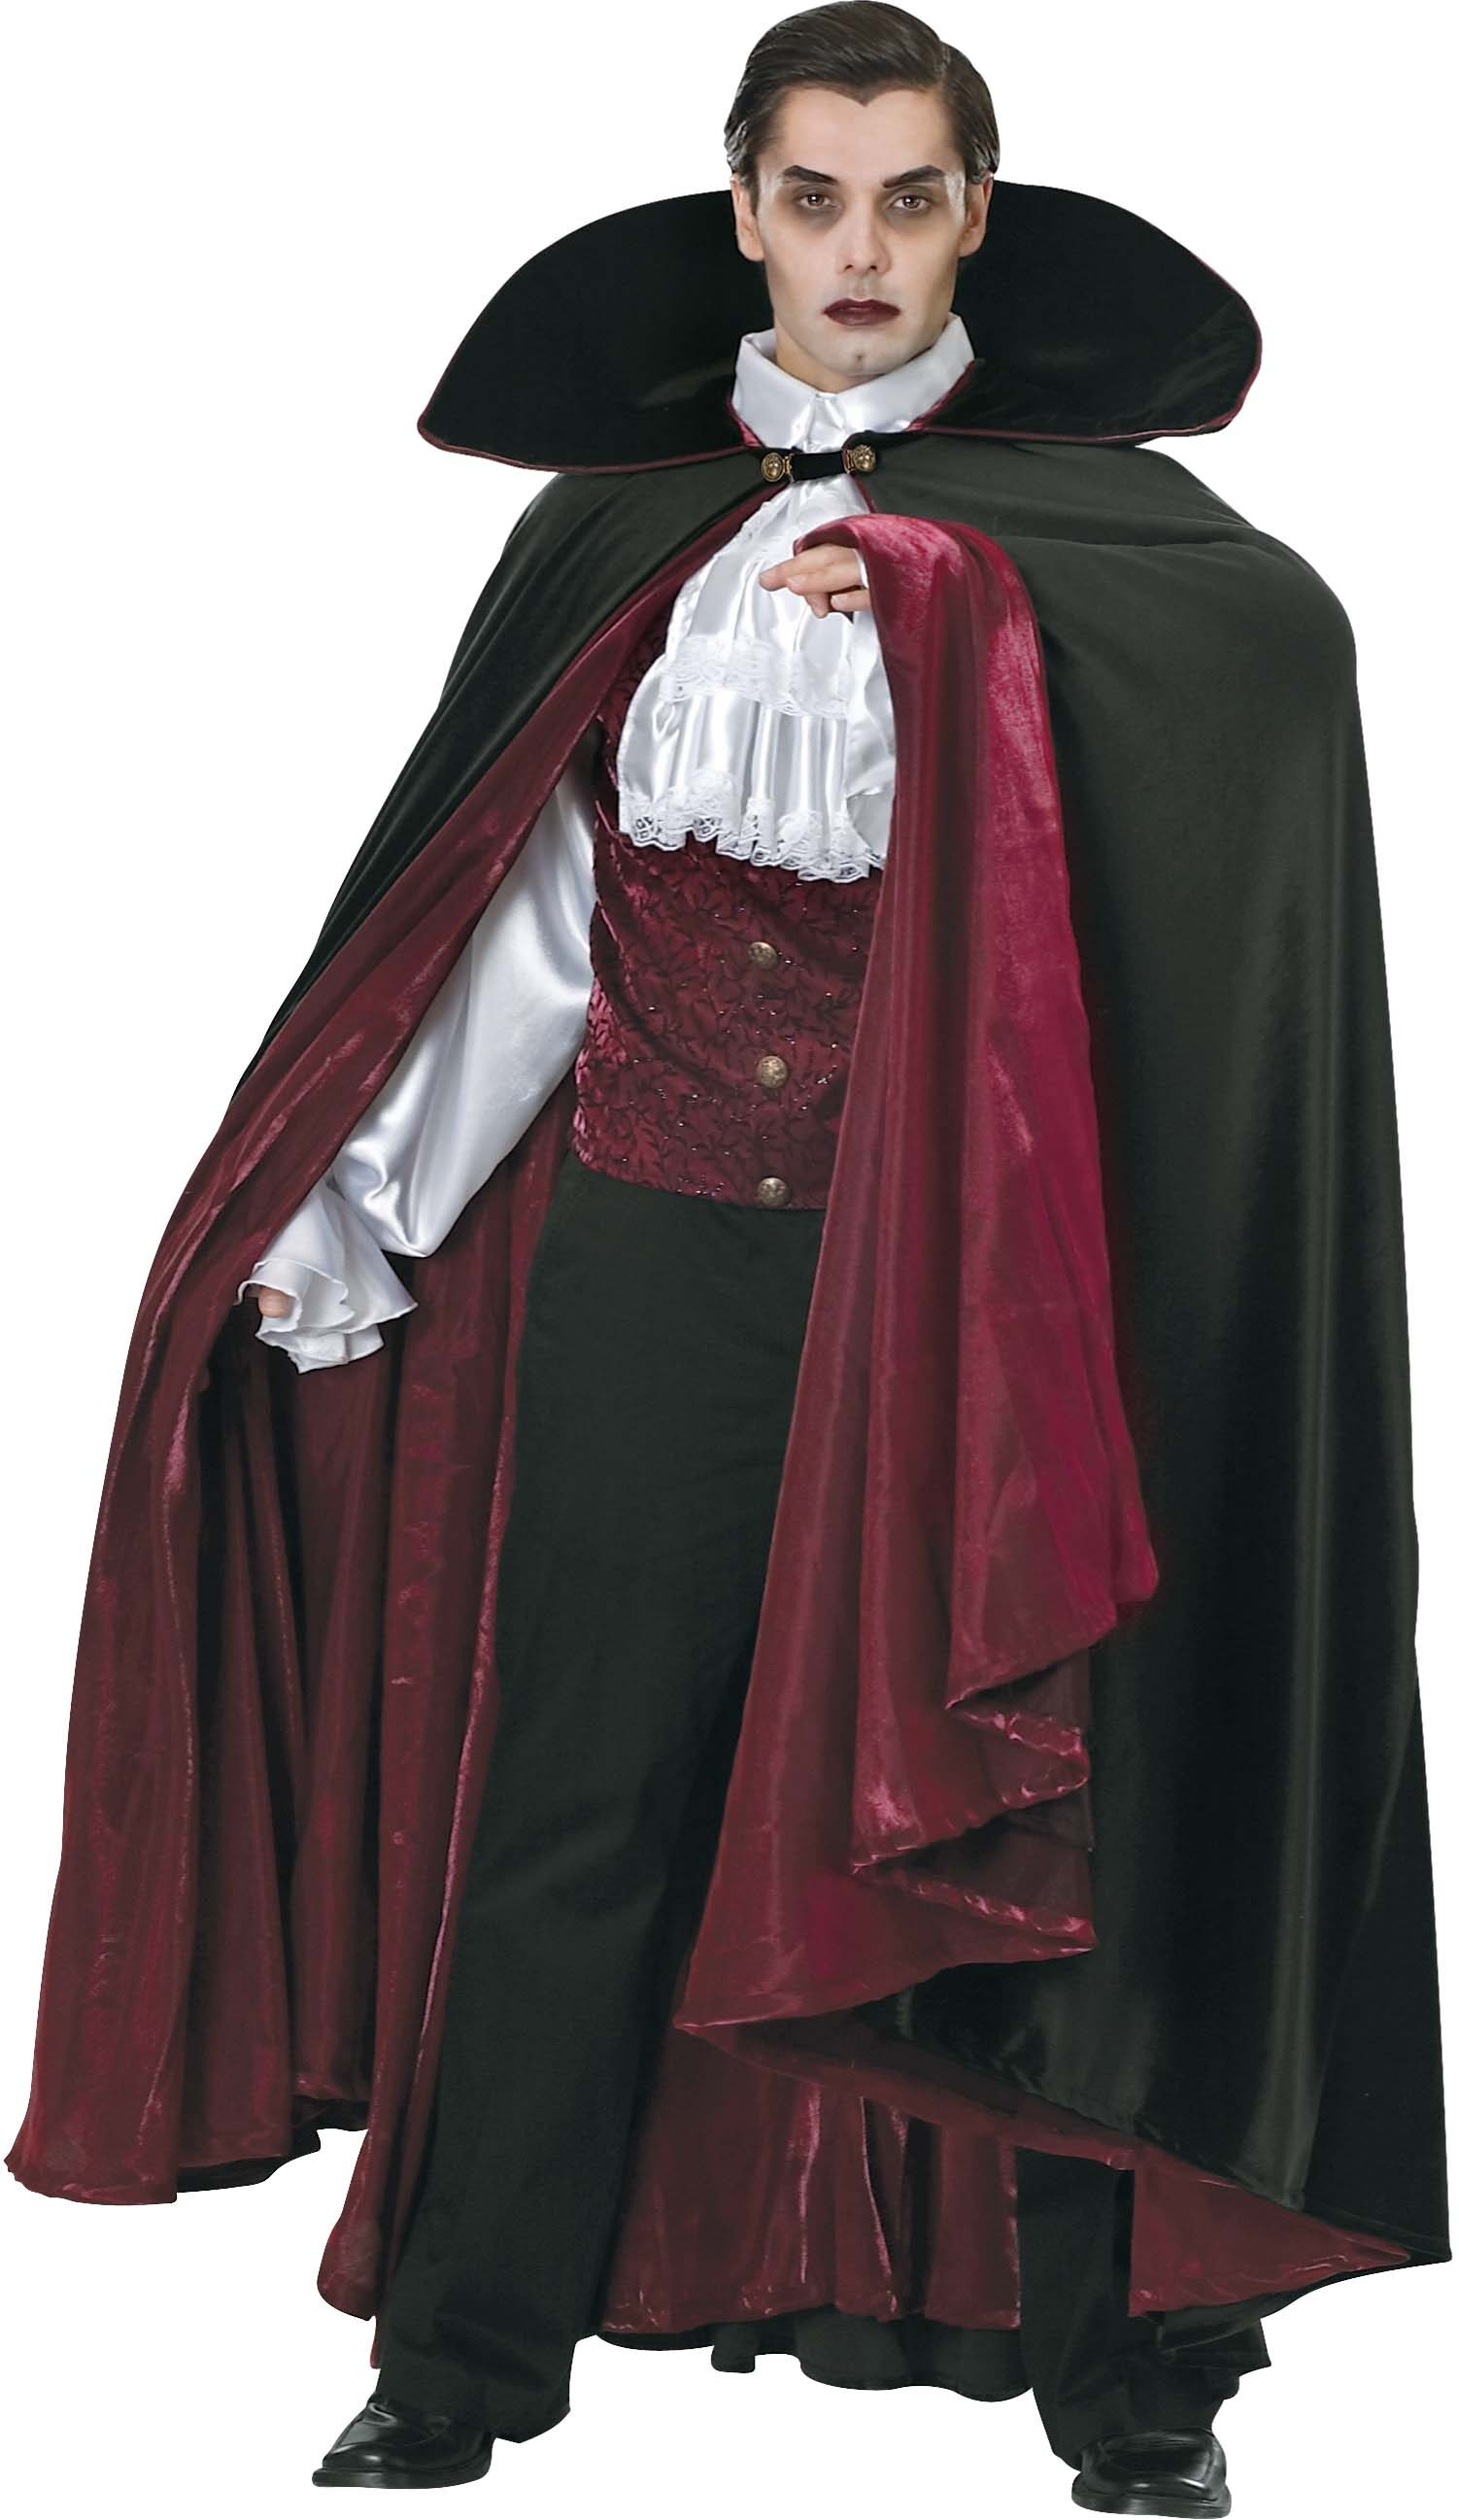 Grand Heritage V&ire Count Adult Costume  sc 1 st  Mr. Costumes & Grand Heritage Vampire Count Adult Costume - Mr. Costumes